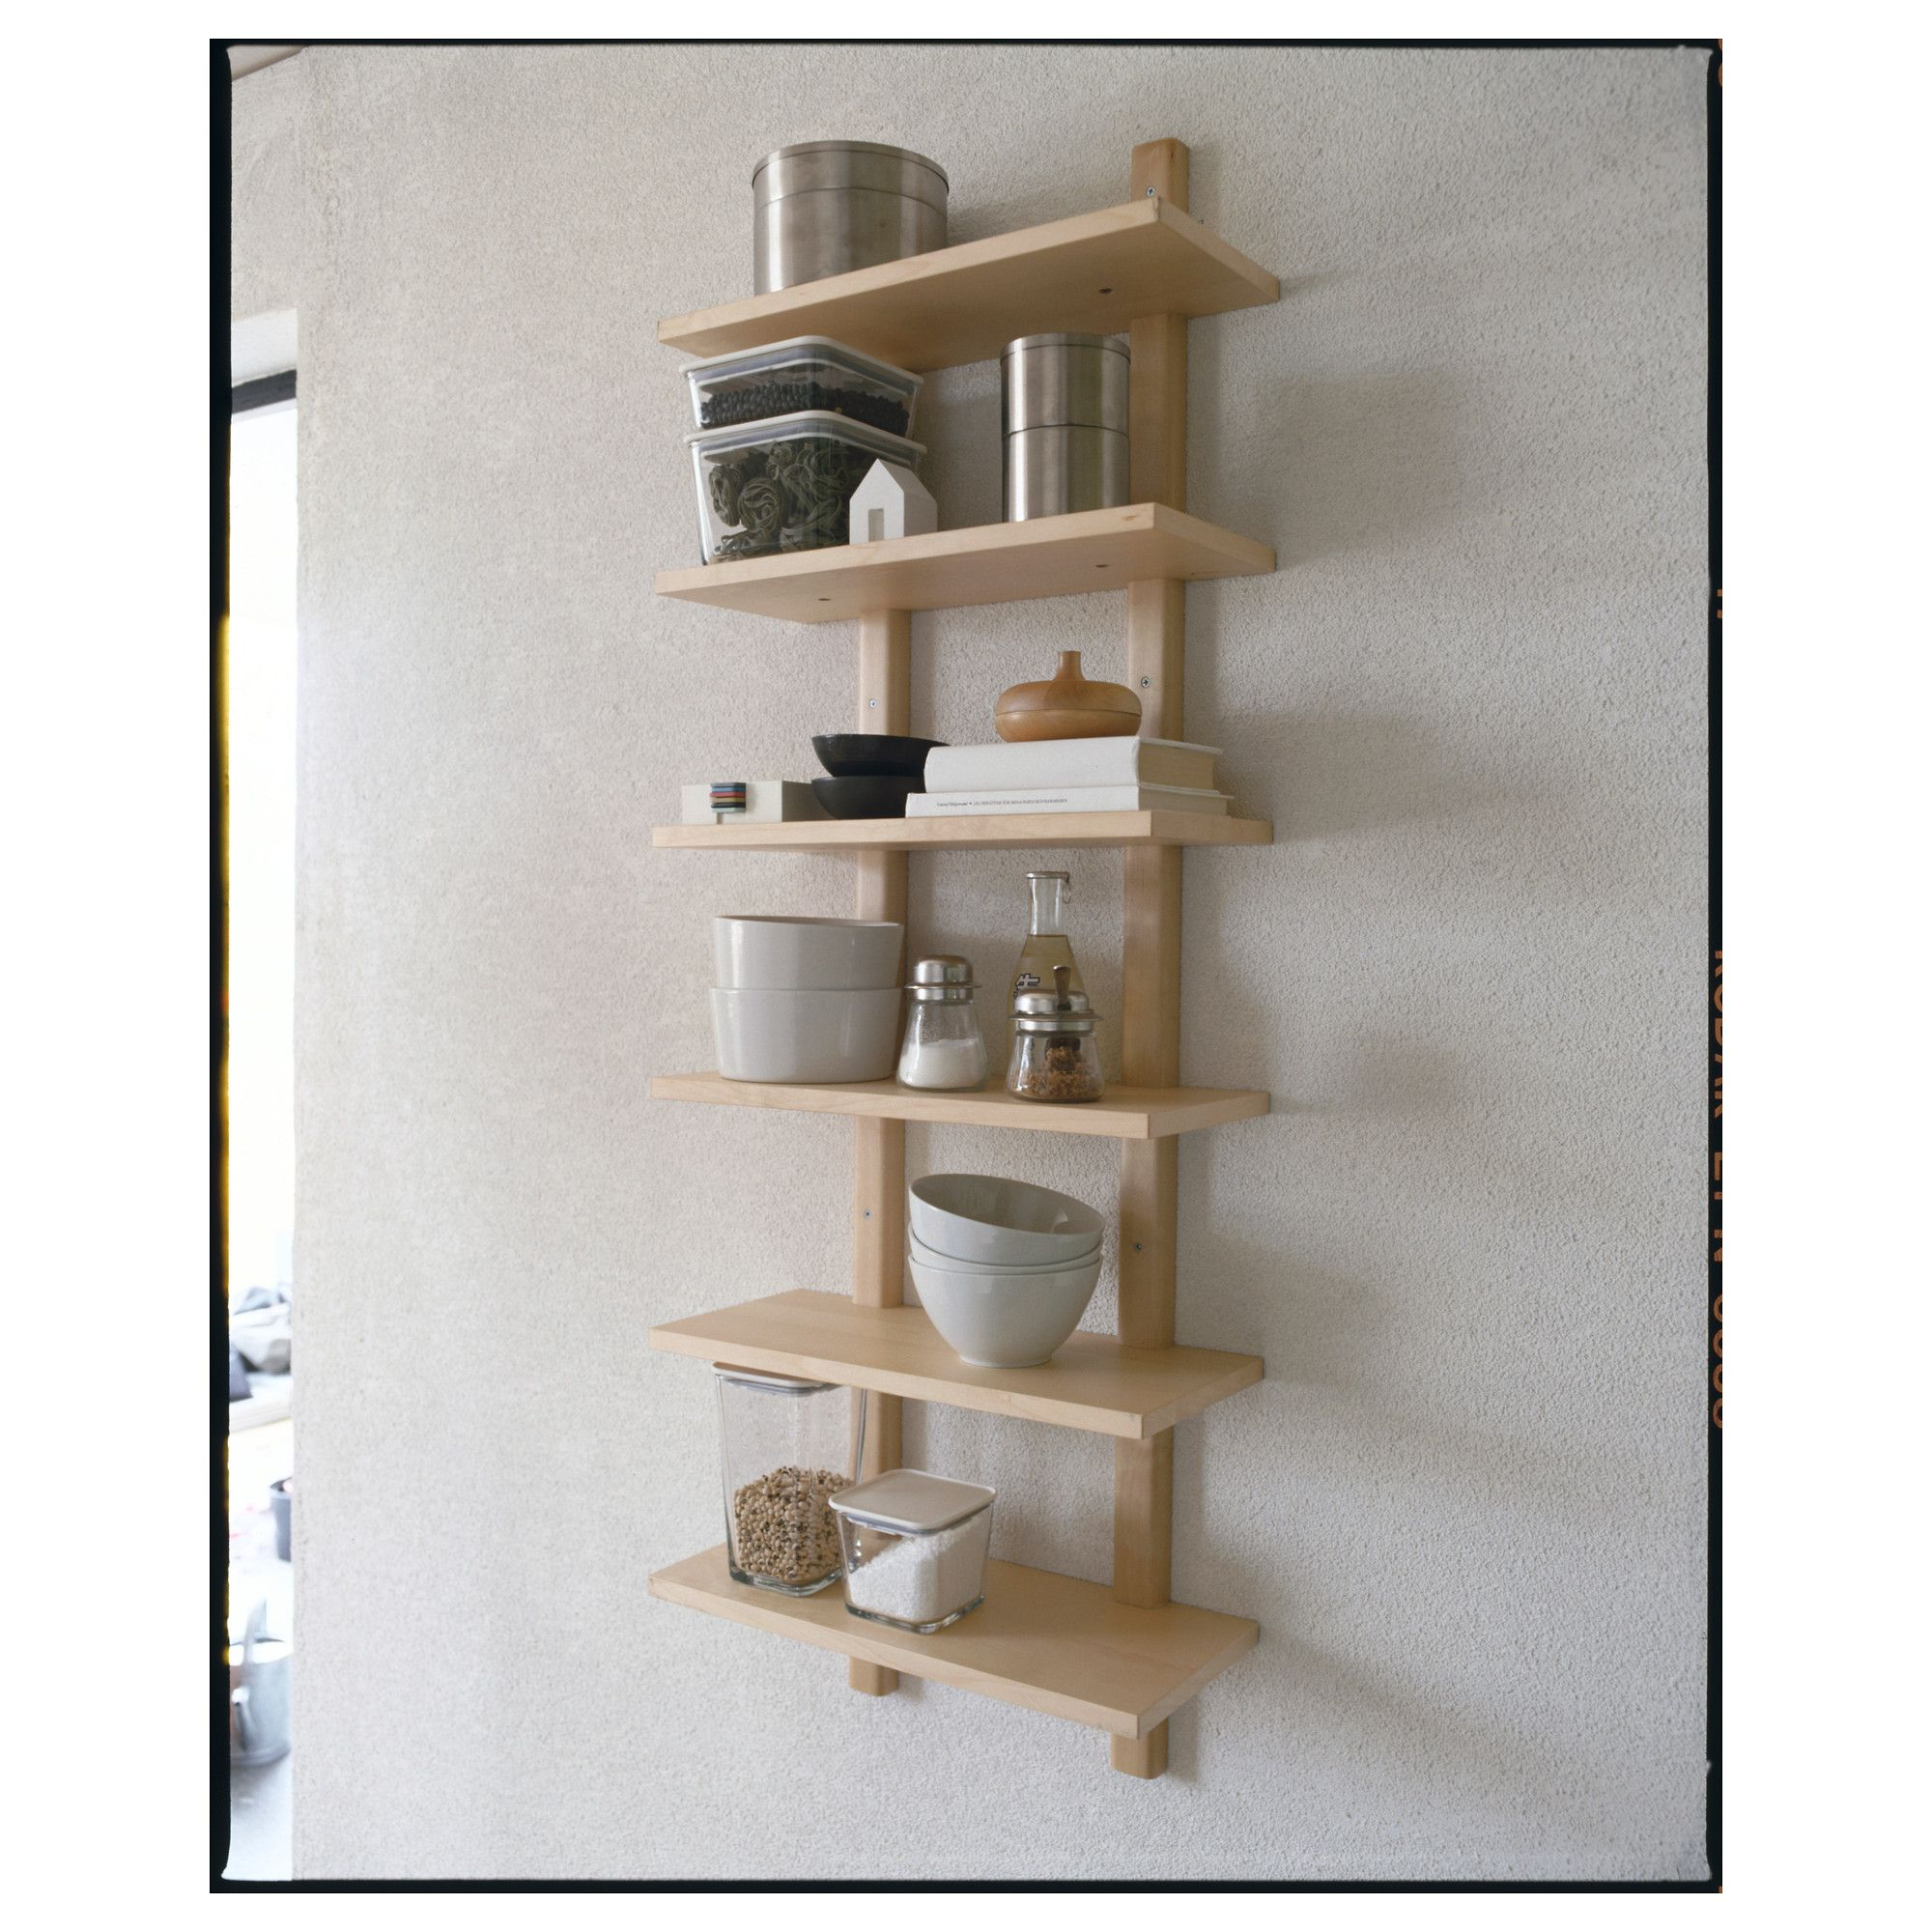 VÄRDE Wall shelf Birch 50x140 cm | Regale, Birken und Kunst